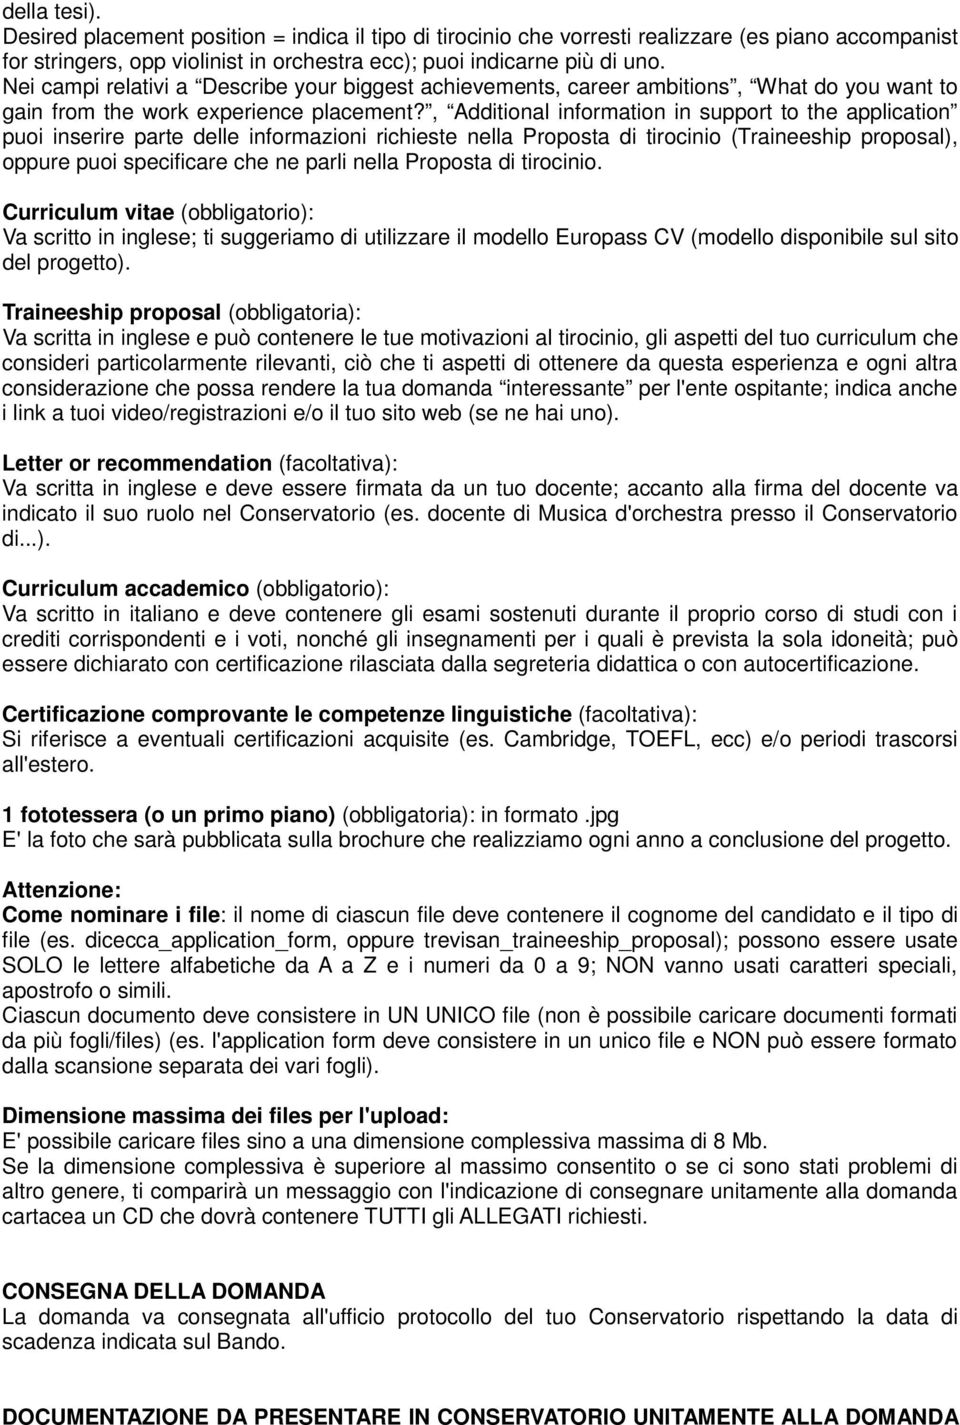 , Additional information in support to the application puoi inserire parte delle informazioni richieste nella Proposta di tirocinio (Traineeship proposal), oppure puoi specificare che ne parli nella